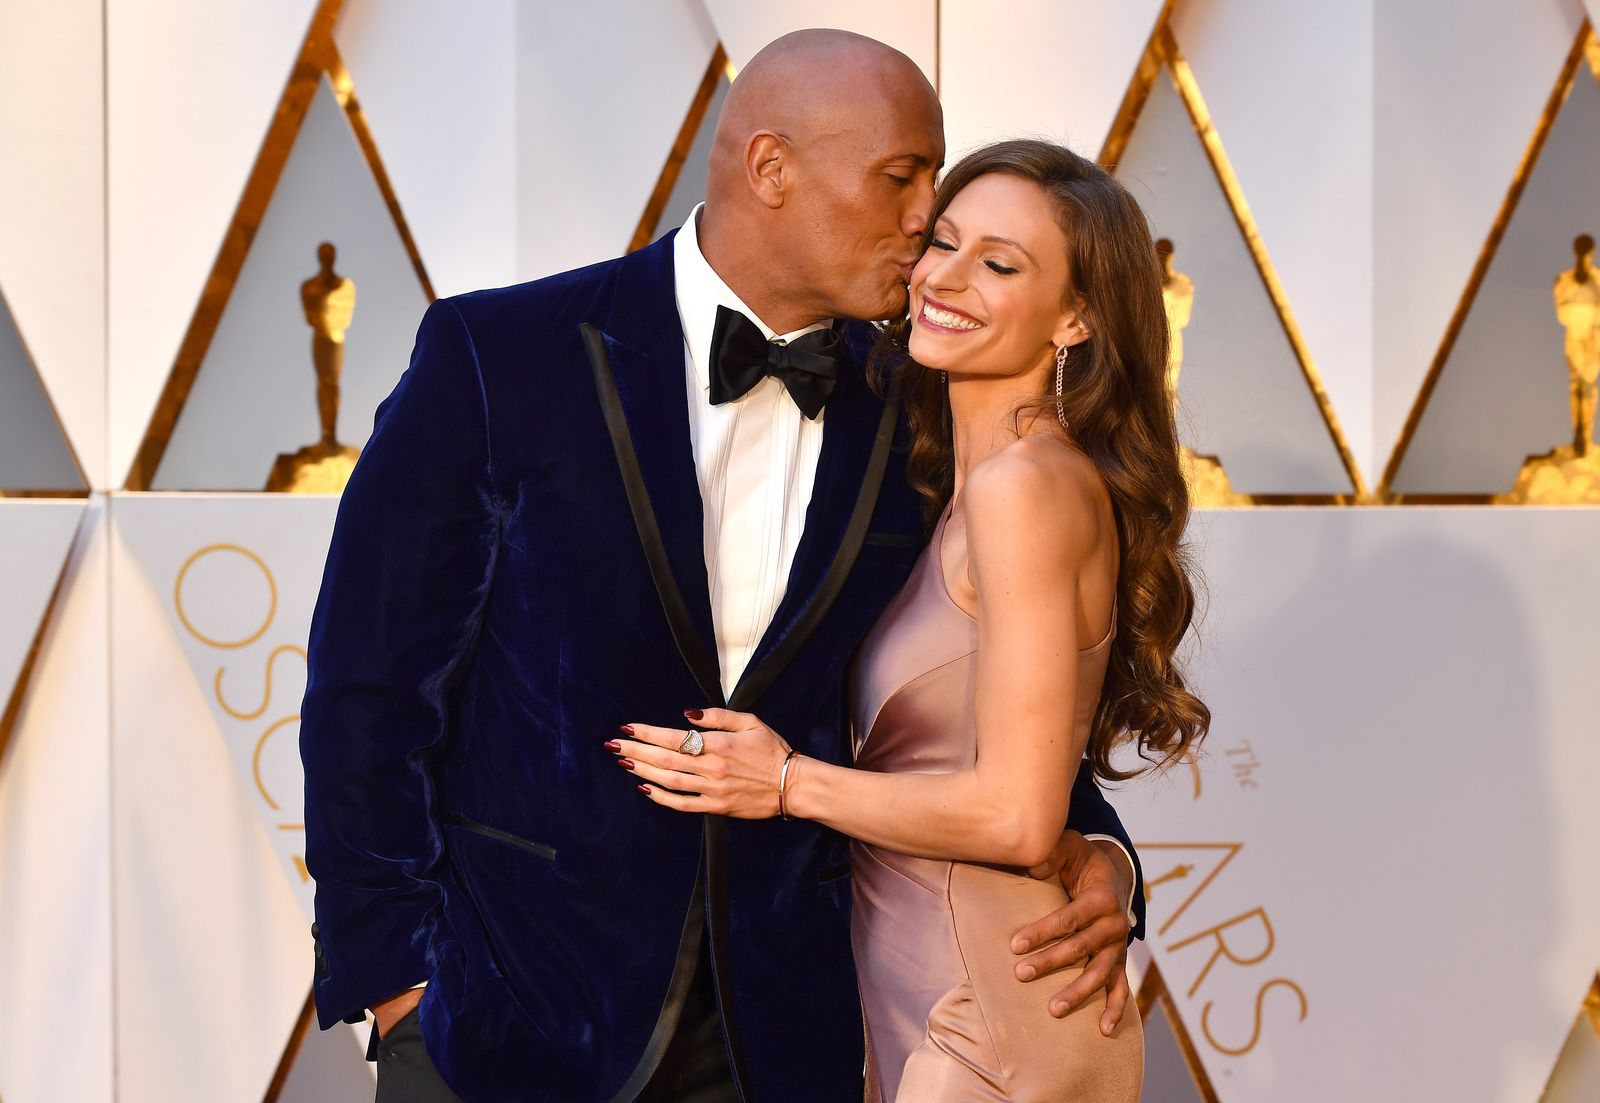 Dwayne Johnson and Lauren Hashian at the 89th Annual Academy Awards on February 26, 2017, in Hollywood, California | Photo: Jeff Kravitz/FilmMagic/Getty Images